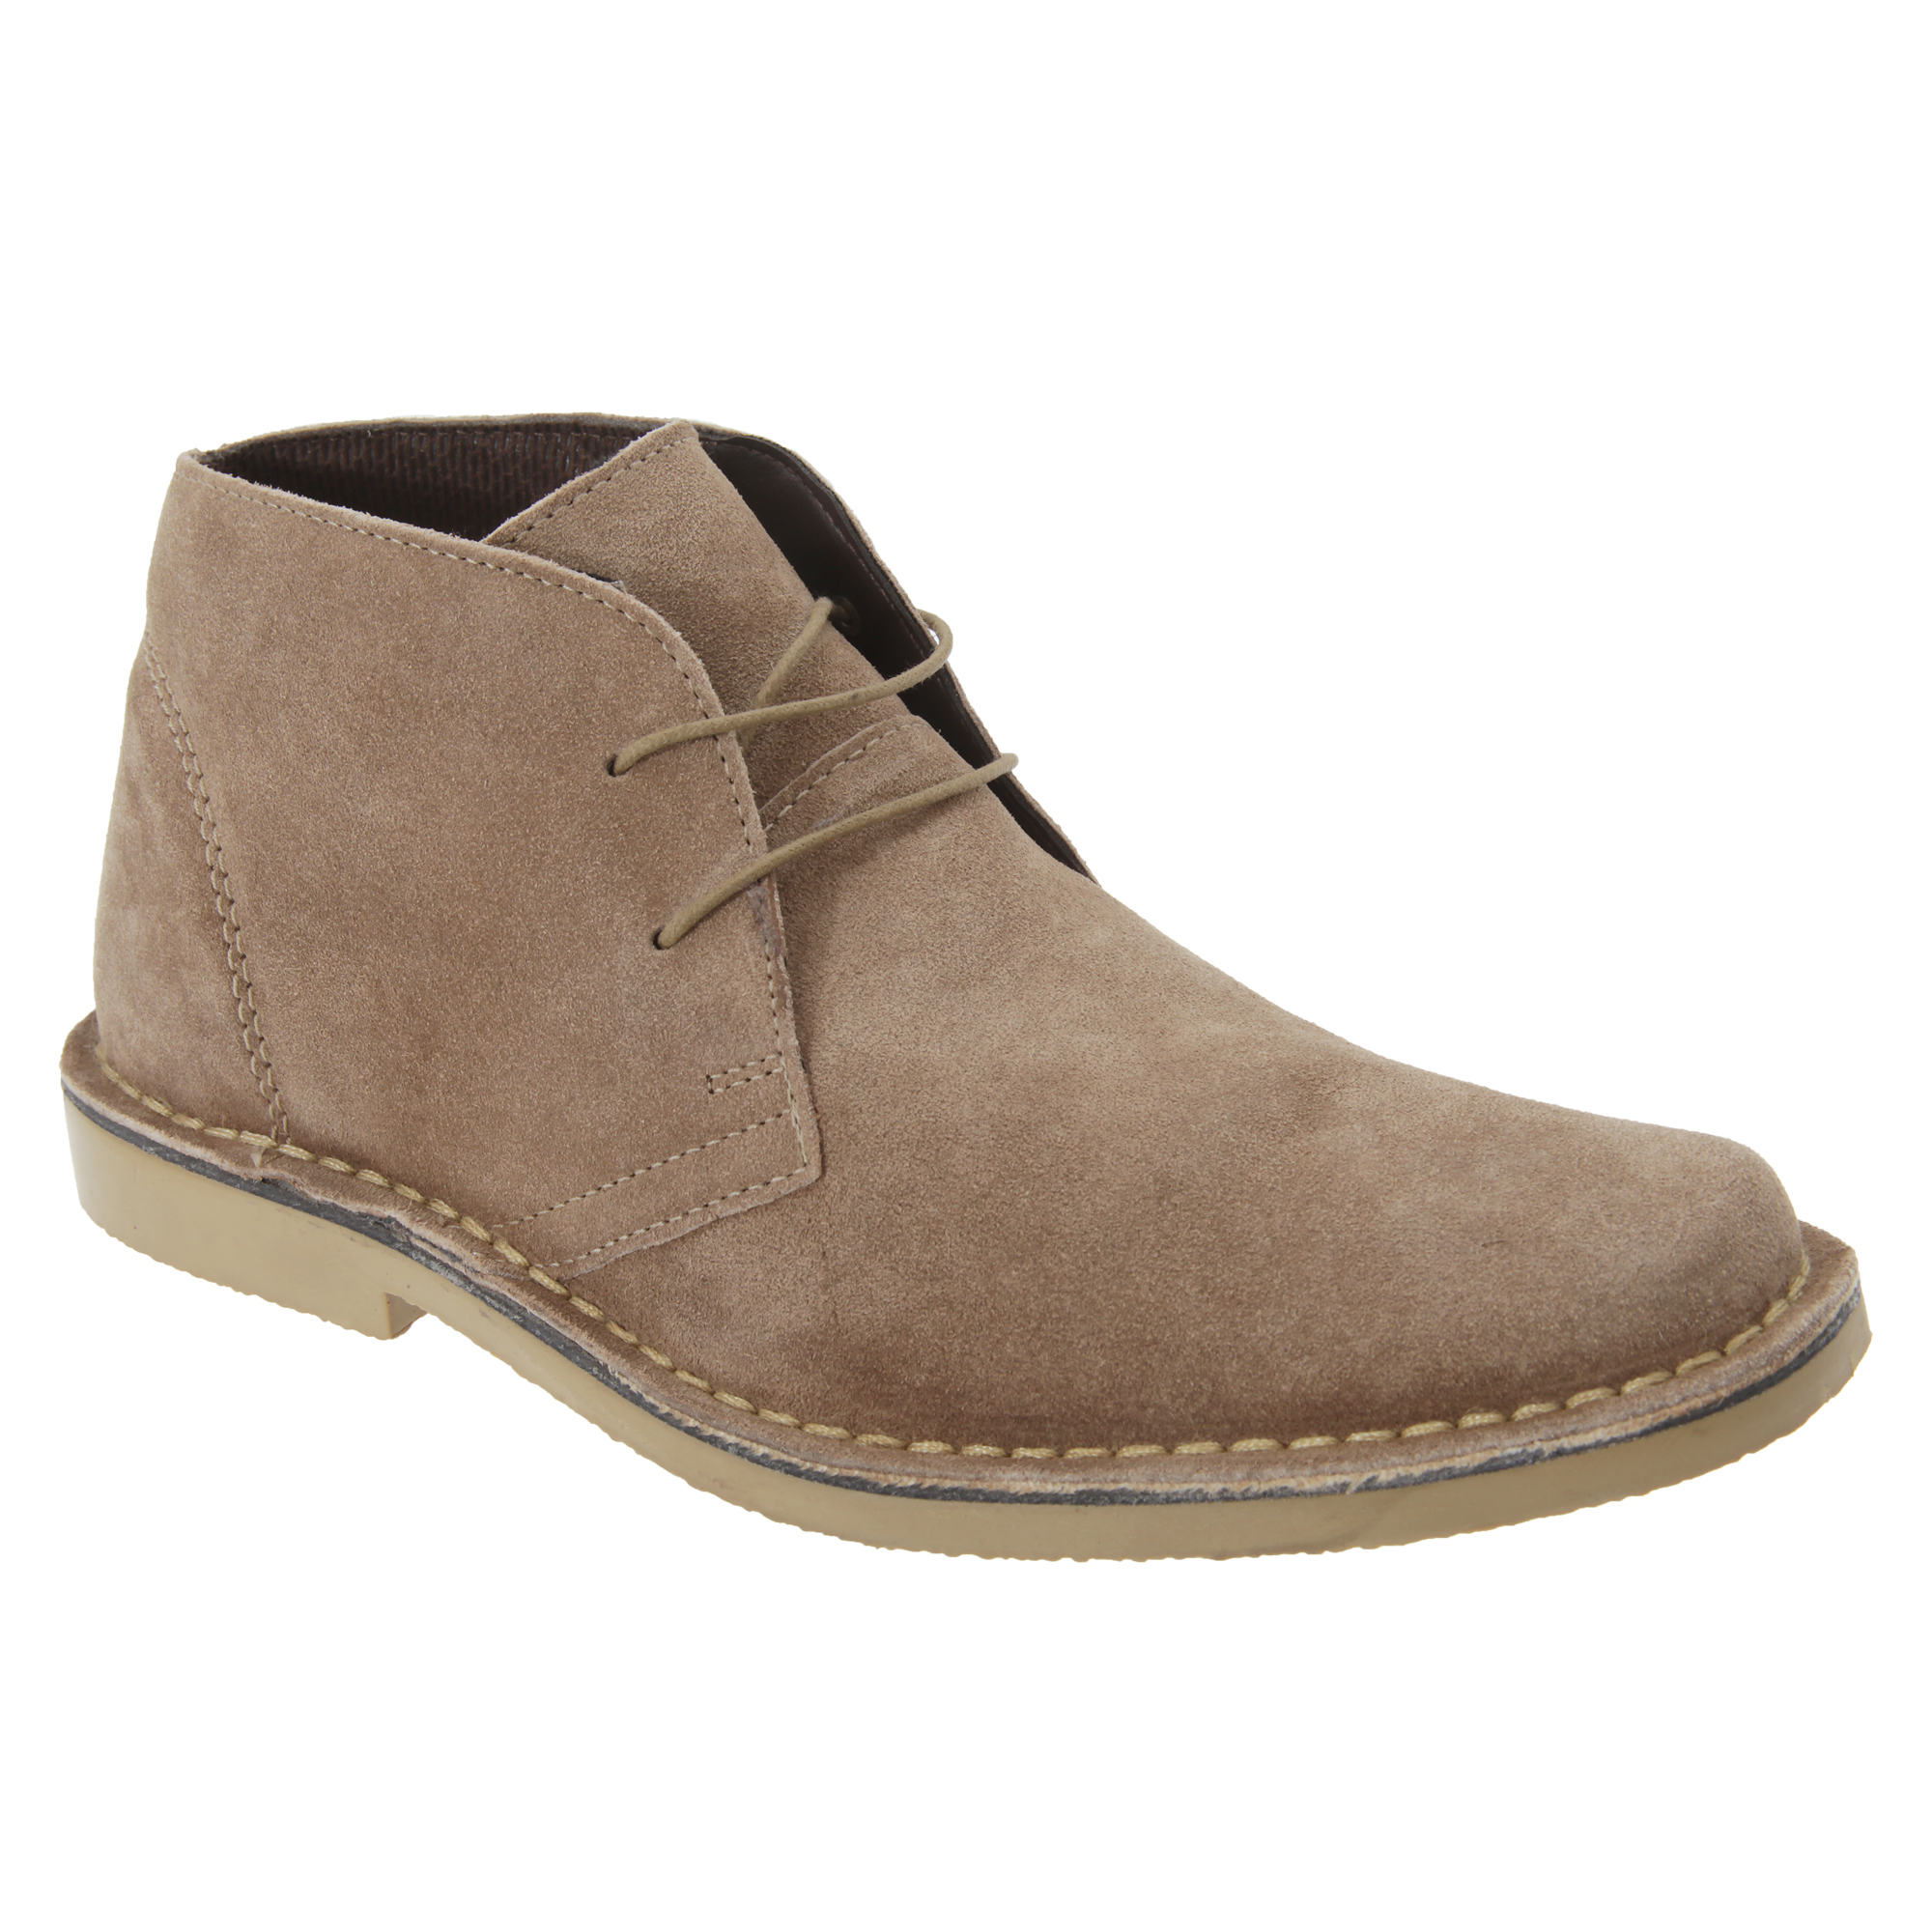 Roamers Mens Real Suede Classic Desert Boots (11 UK) (Sand)